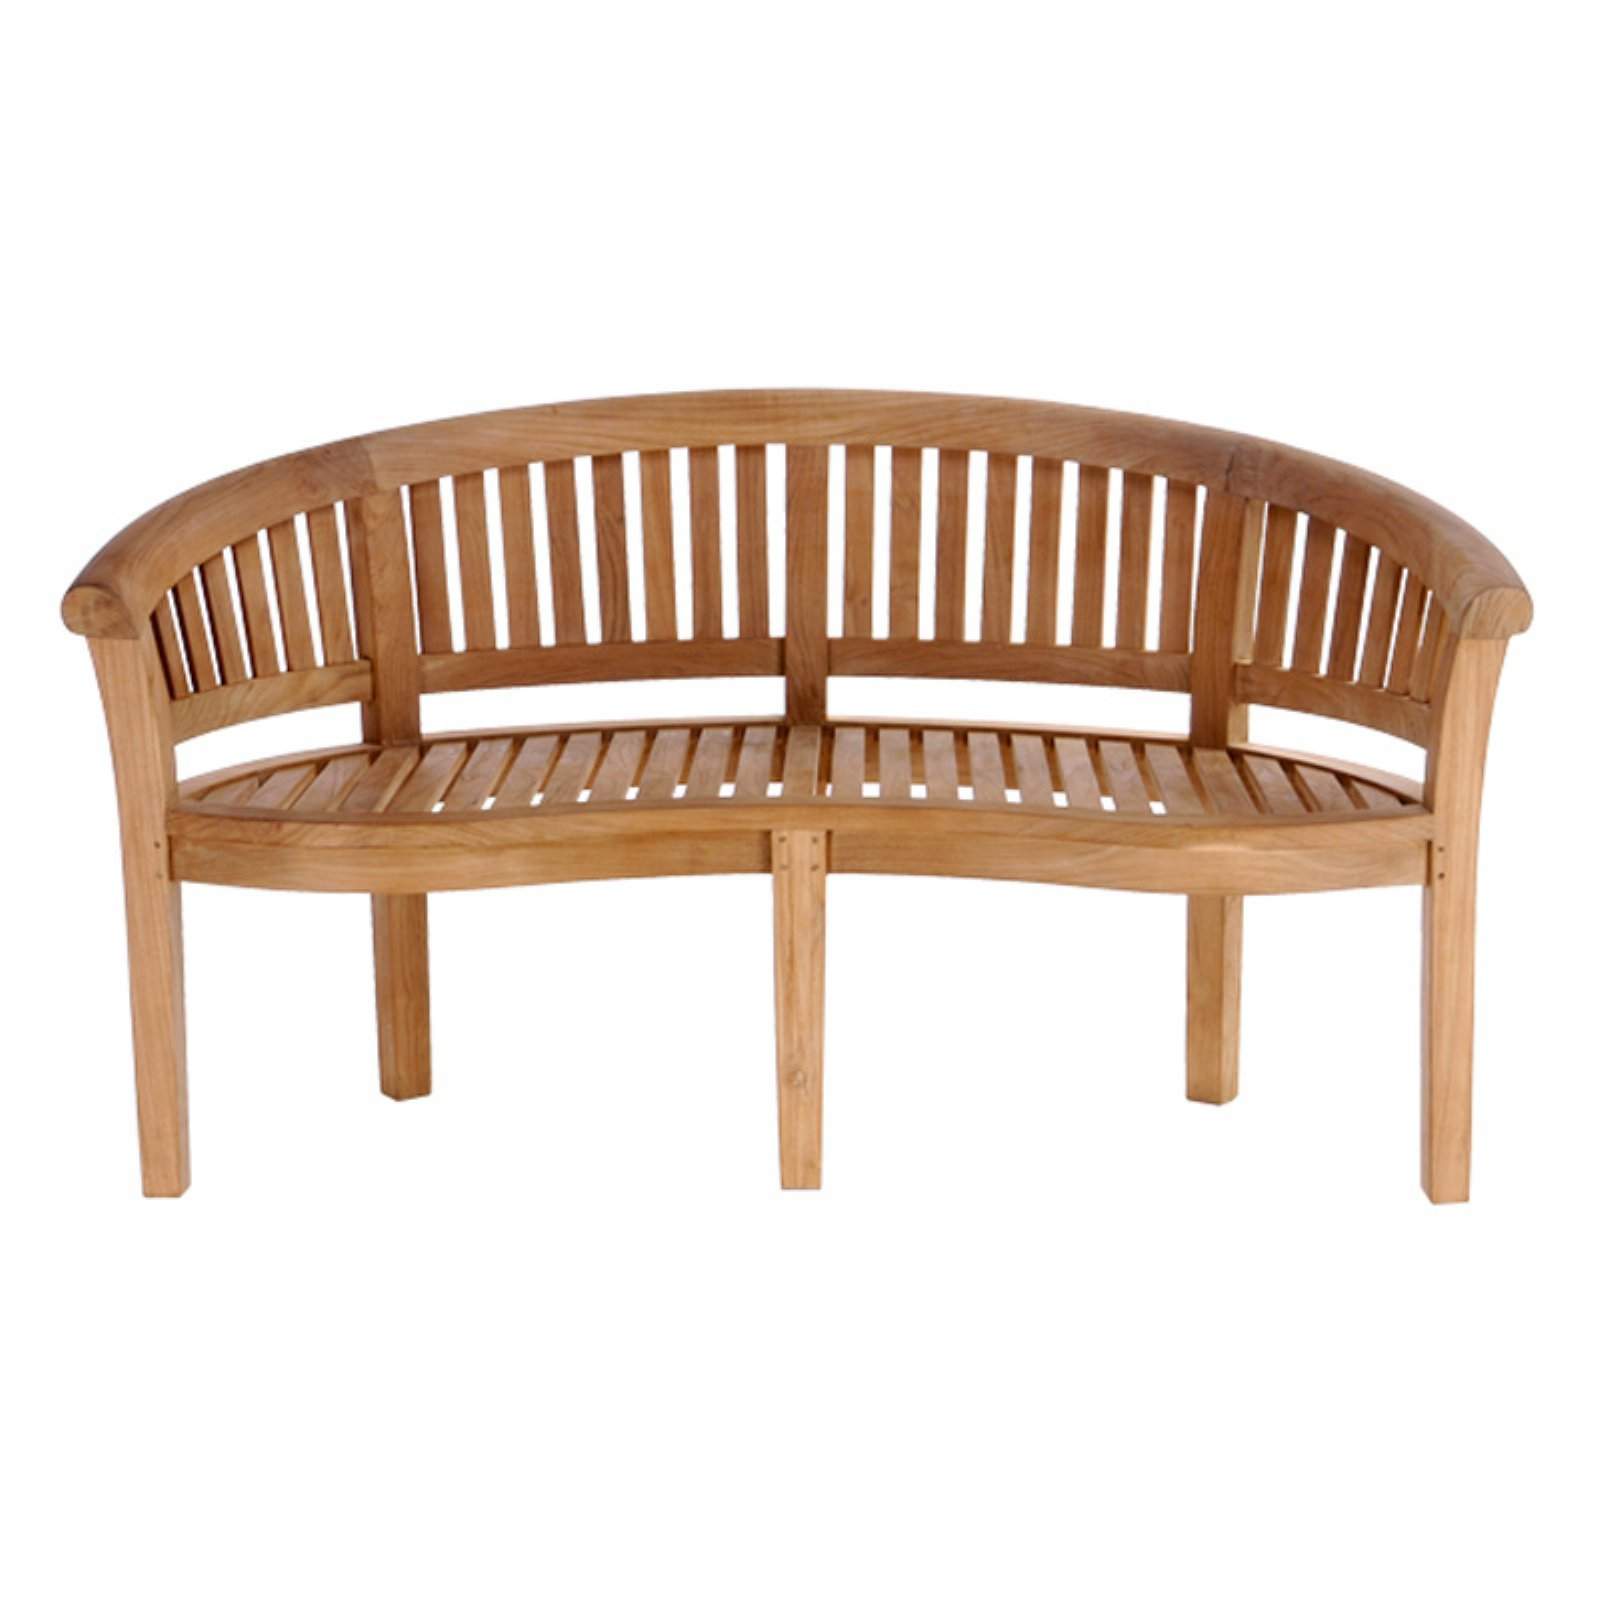 Prime Chic Teak Peanut Teak Outdoor Bench Products In 2019 Ocoug Best Dining Table And Chair Ideas Images Ocougorg